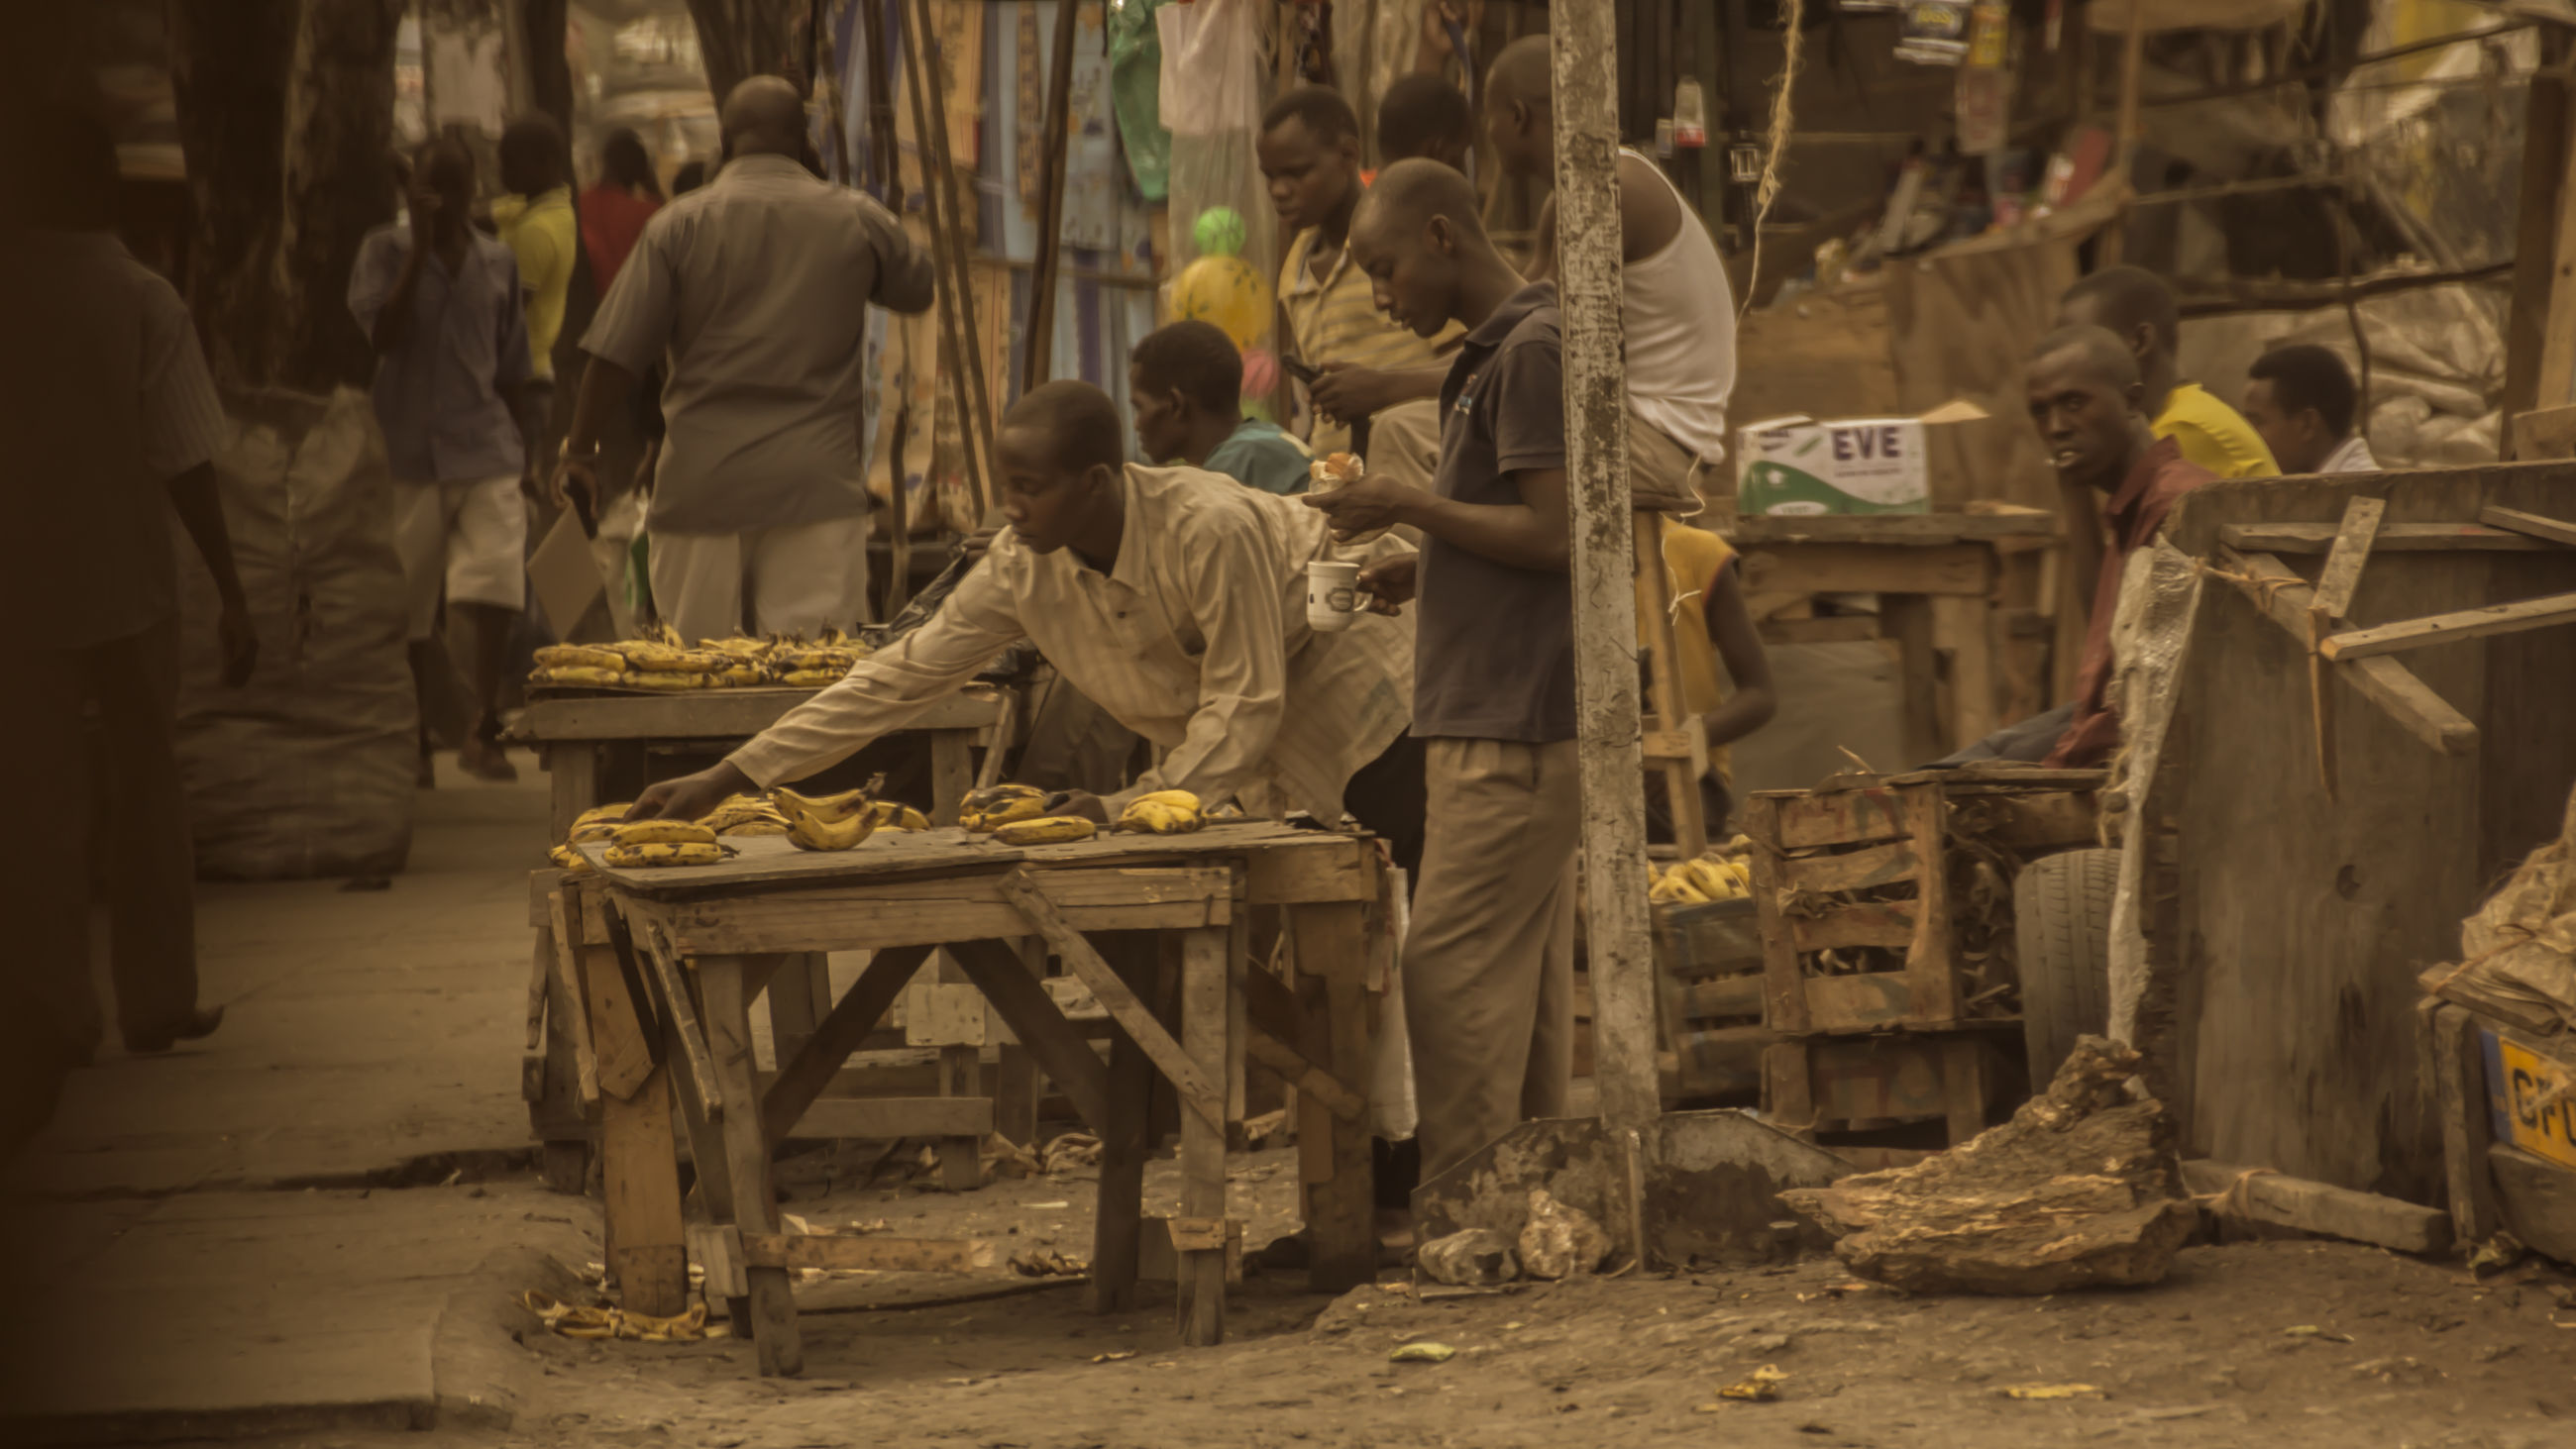 men, occupation, real people, working, group of people, wood - material, day, people, standing, outdoors, lifestyles, rear view, architecture, group, full length, skill, seat, adult, market, log